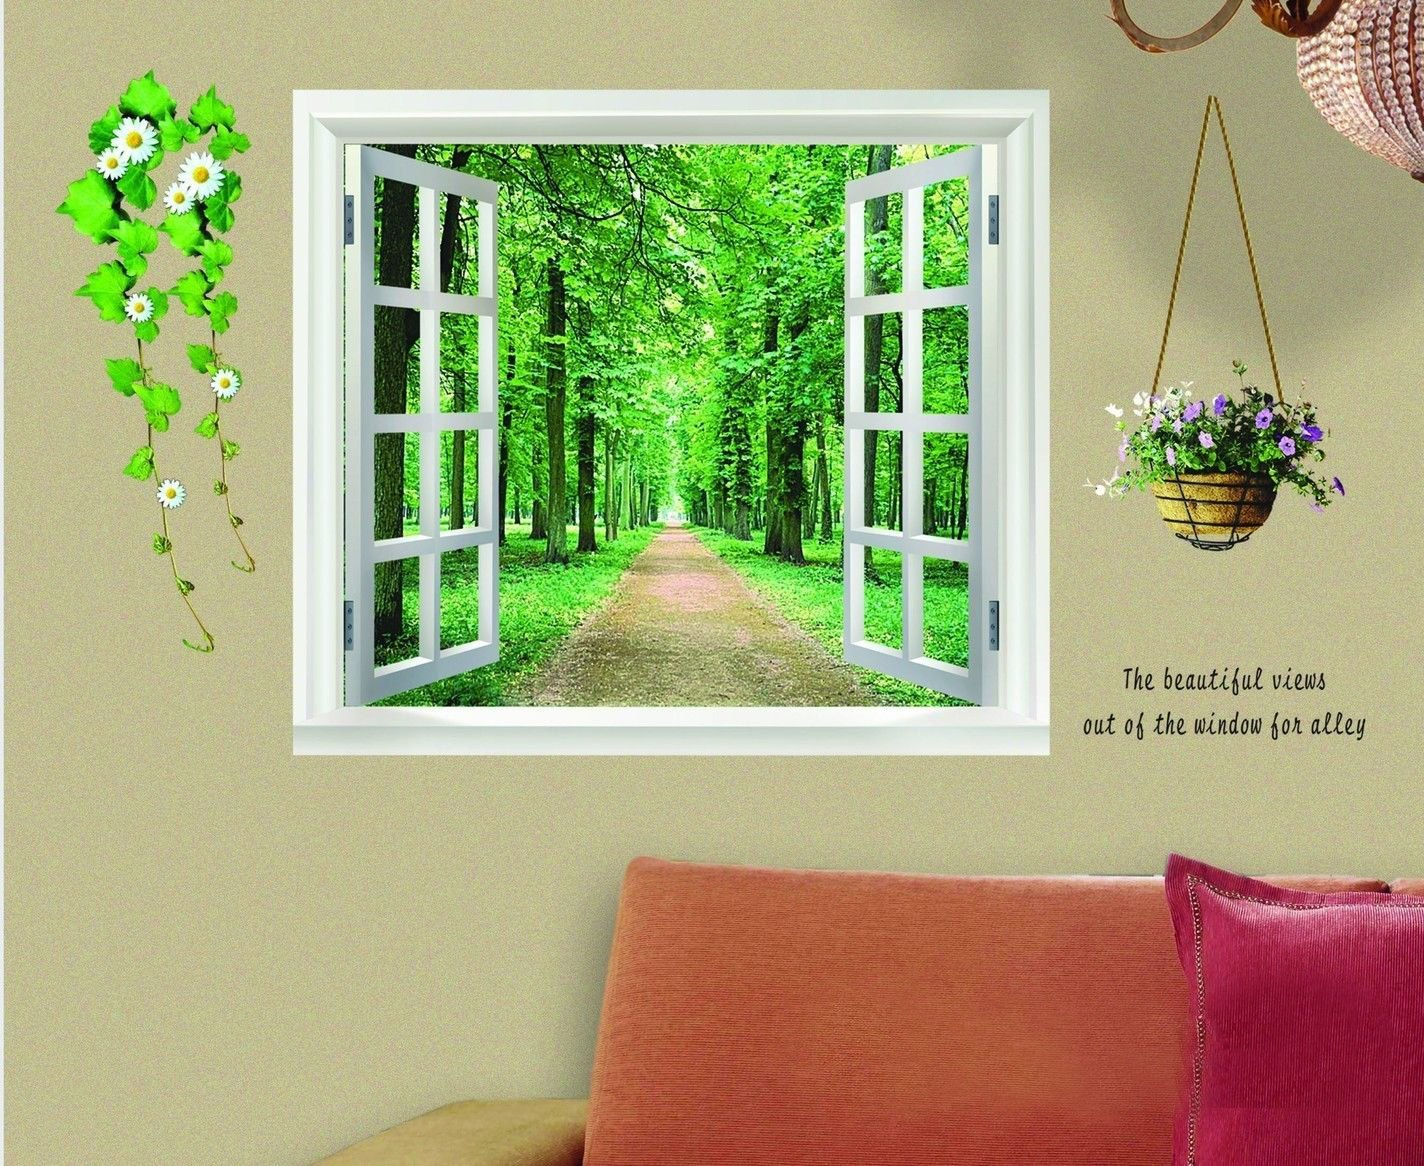 amazon com sodial r huge window 3d green view flowers plant wall amazon com sodial r huge window 3d green view flowers plant wall stickers art mural decal wallpaper home kitchen